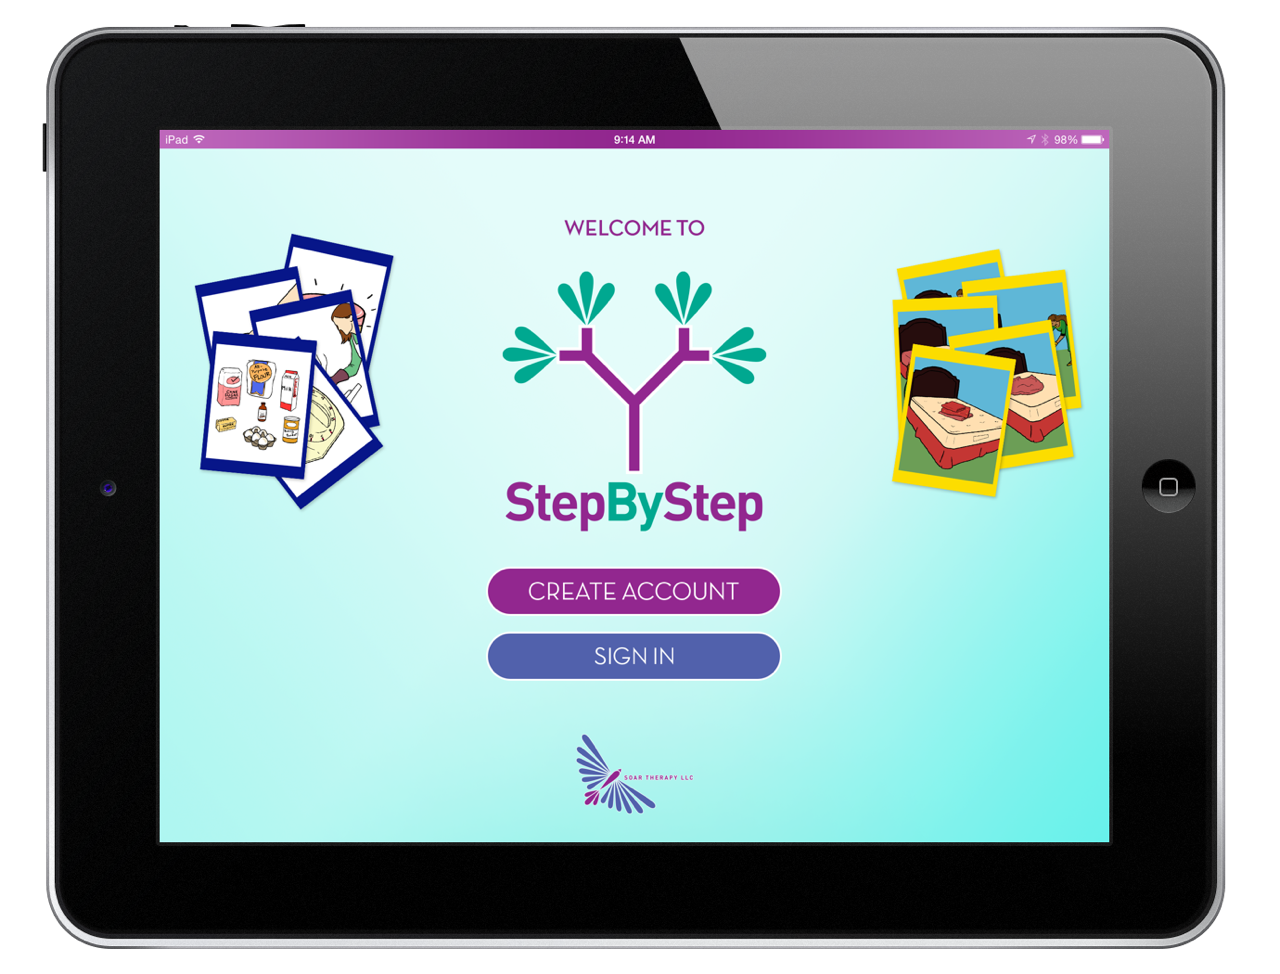 Step by Step: App Review